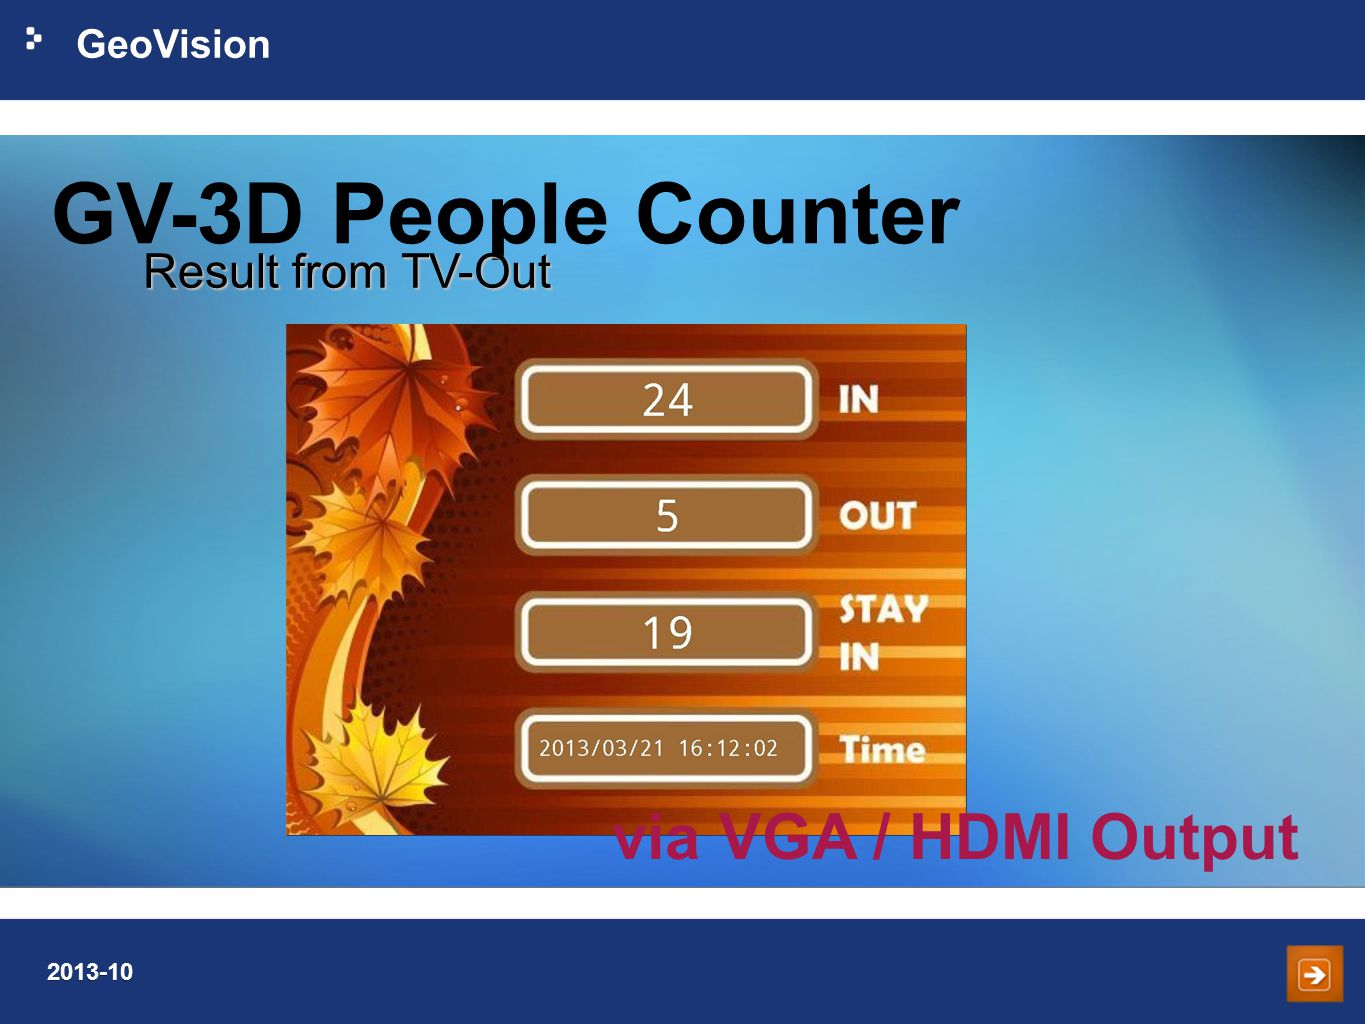 GV-3D People Counter Result from TV-Out via VGA / HDMI Output